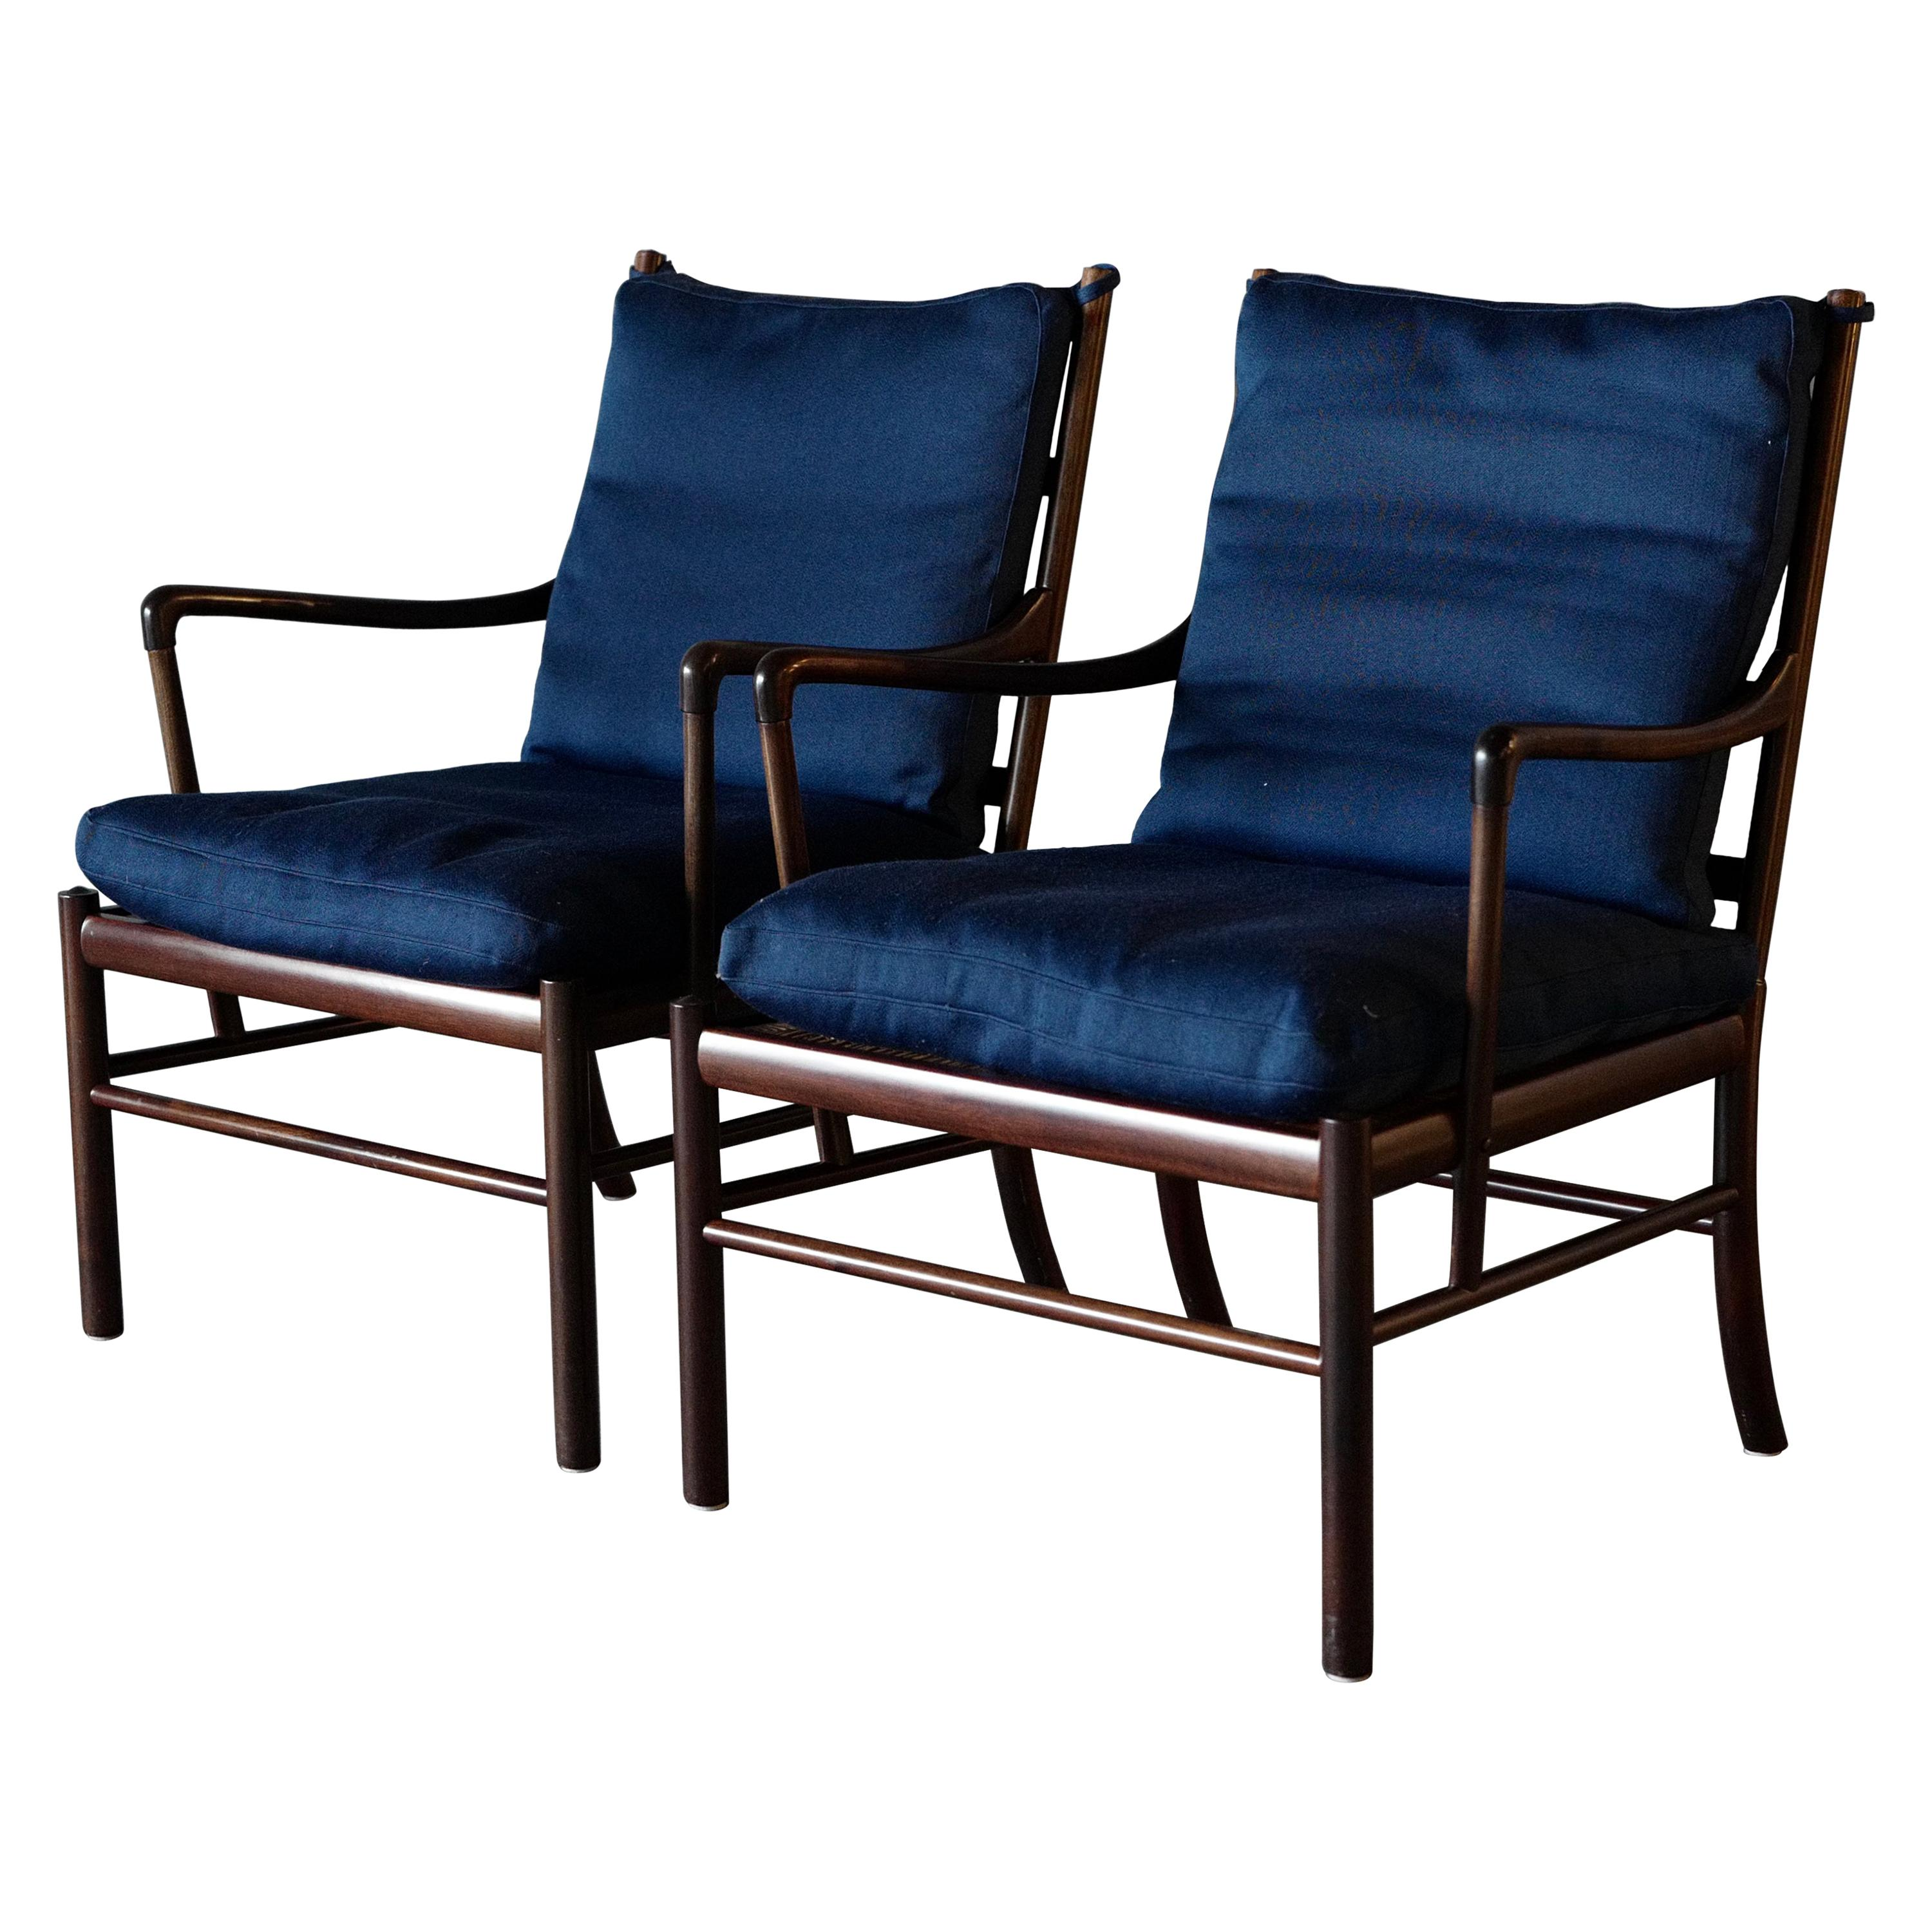 """Ole Wanscher """"Colonial"""" Chairs in Mahogany, a Pair"""